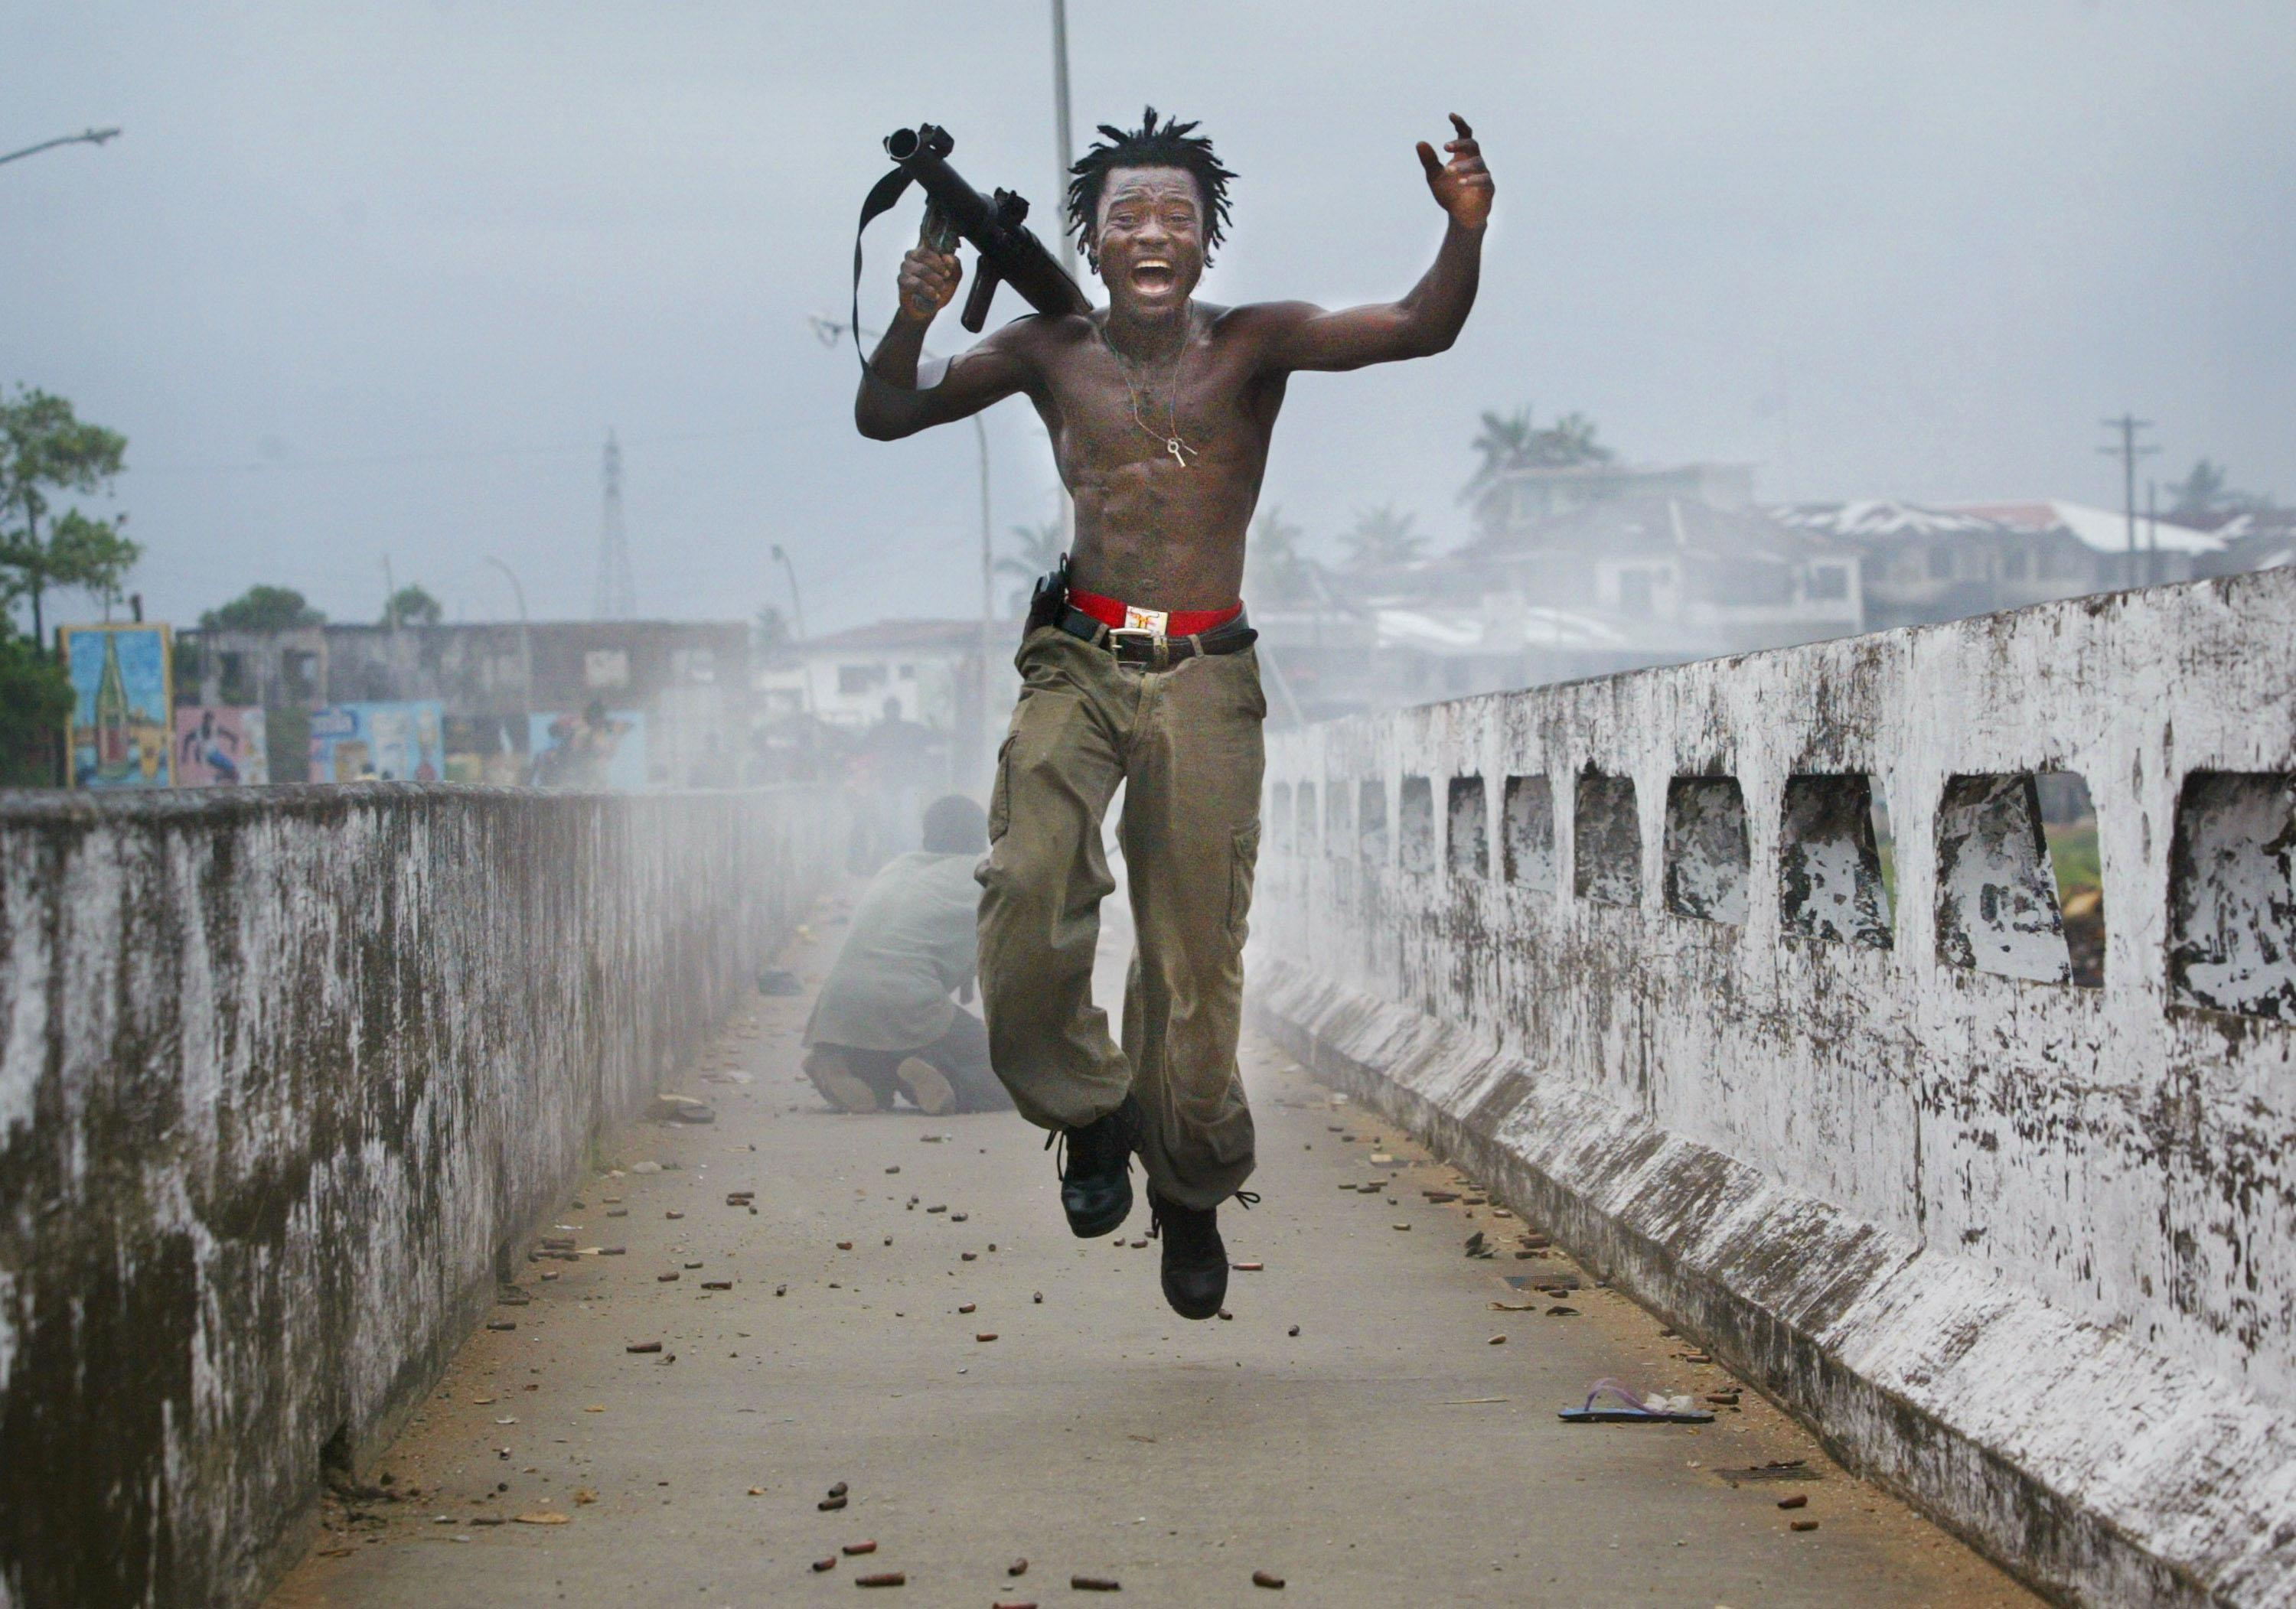 <p>A Liberian militia commander loyal to the government exults after firing a rocket-propelled grenade at rebel forces at a key strategic bridge July 20, 2003 in Monrovia, Liberia. Government forces succeeded in forcing back rebel forces in fierce fighting on the edge of Monrovia's city center. </p>